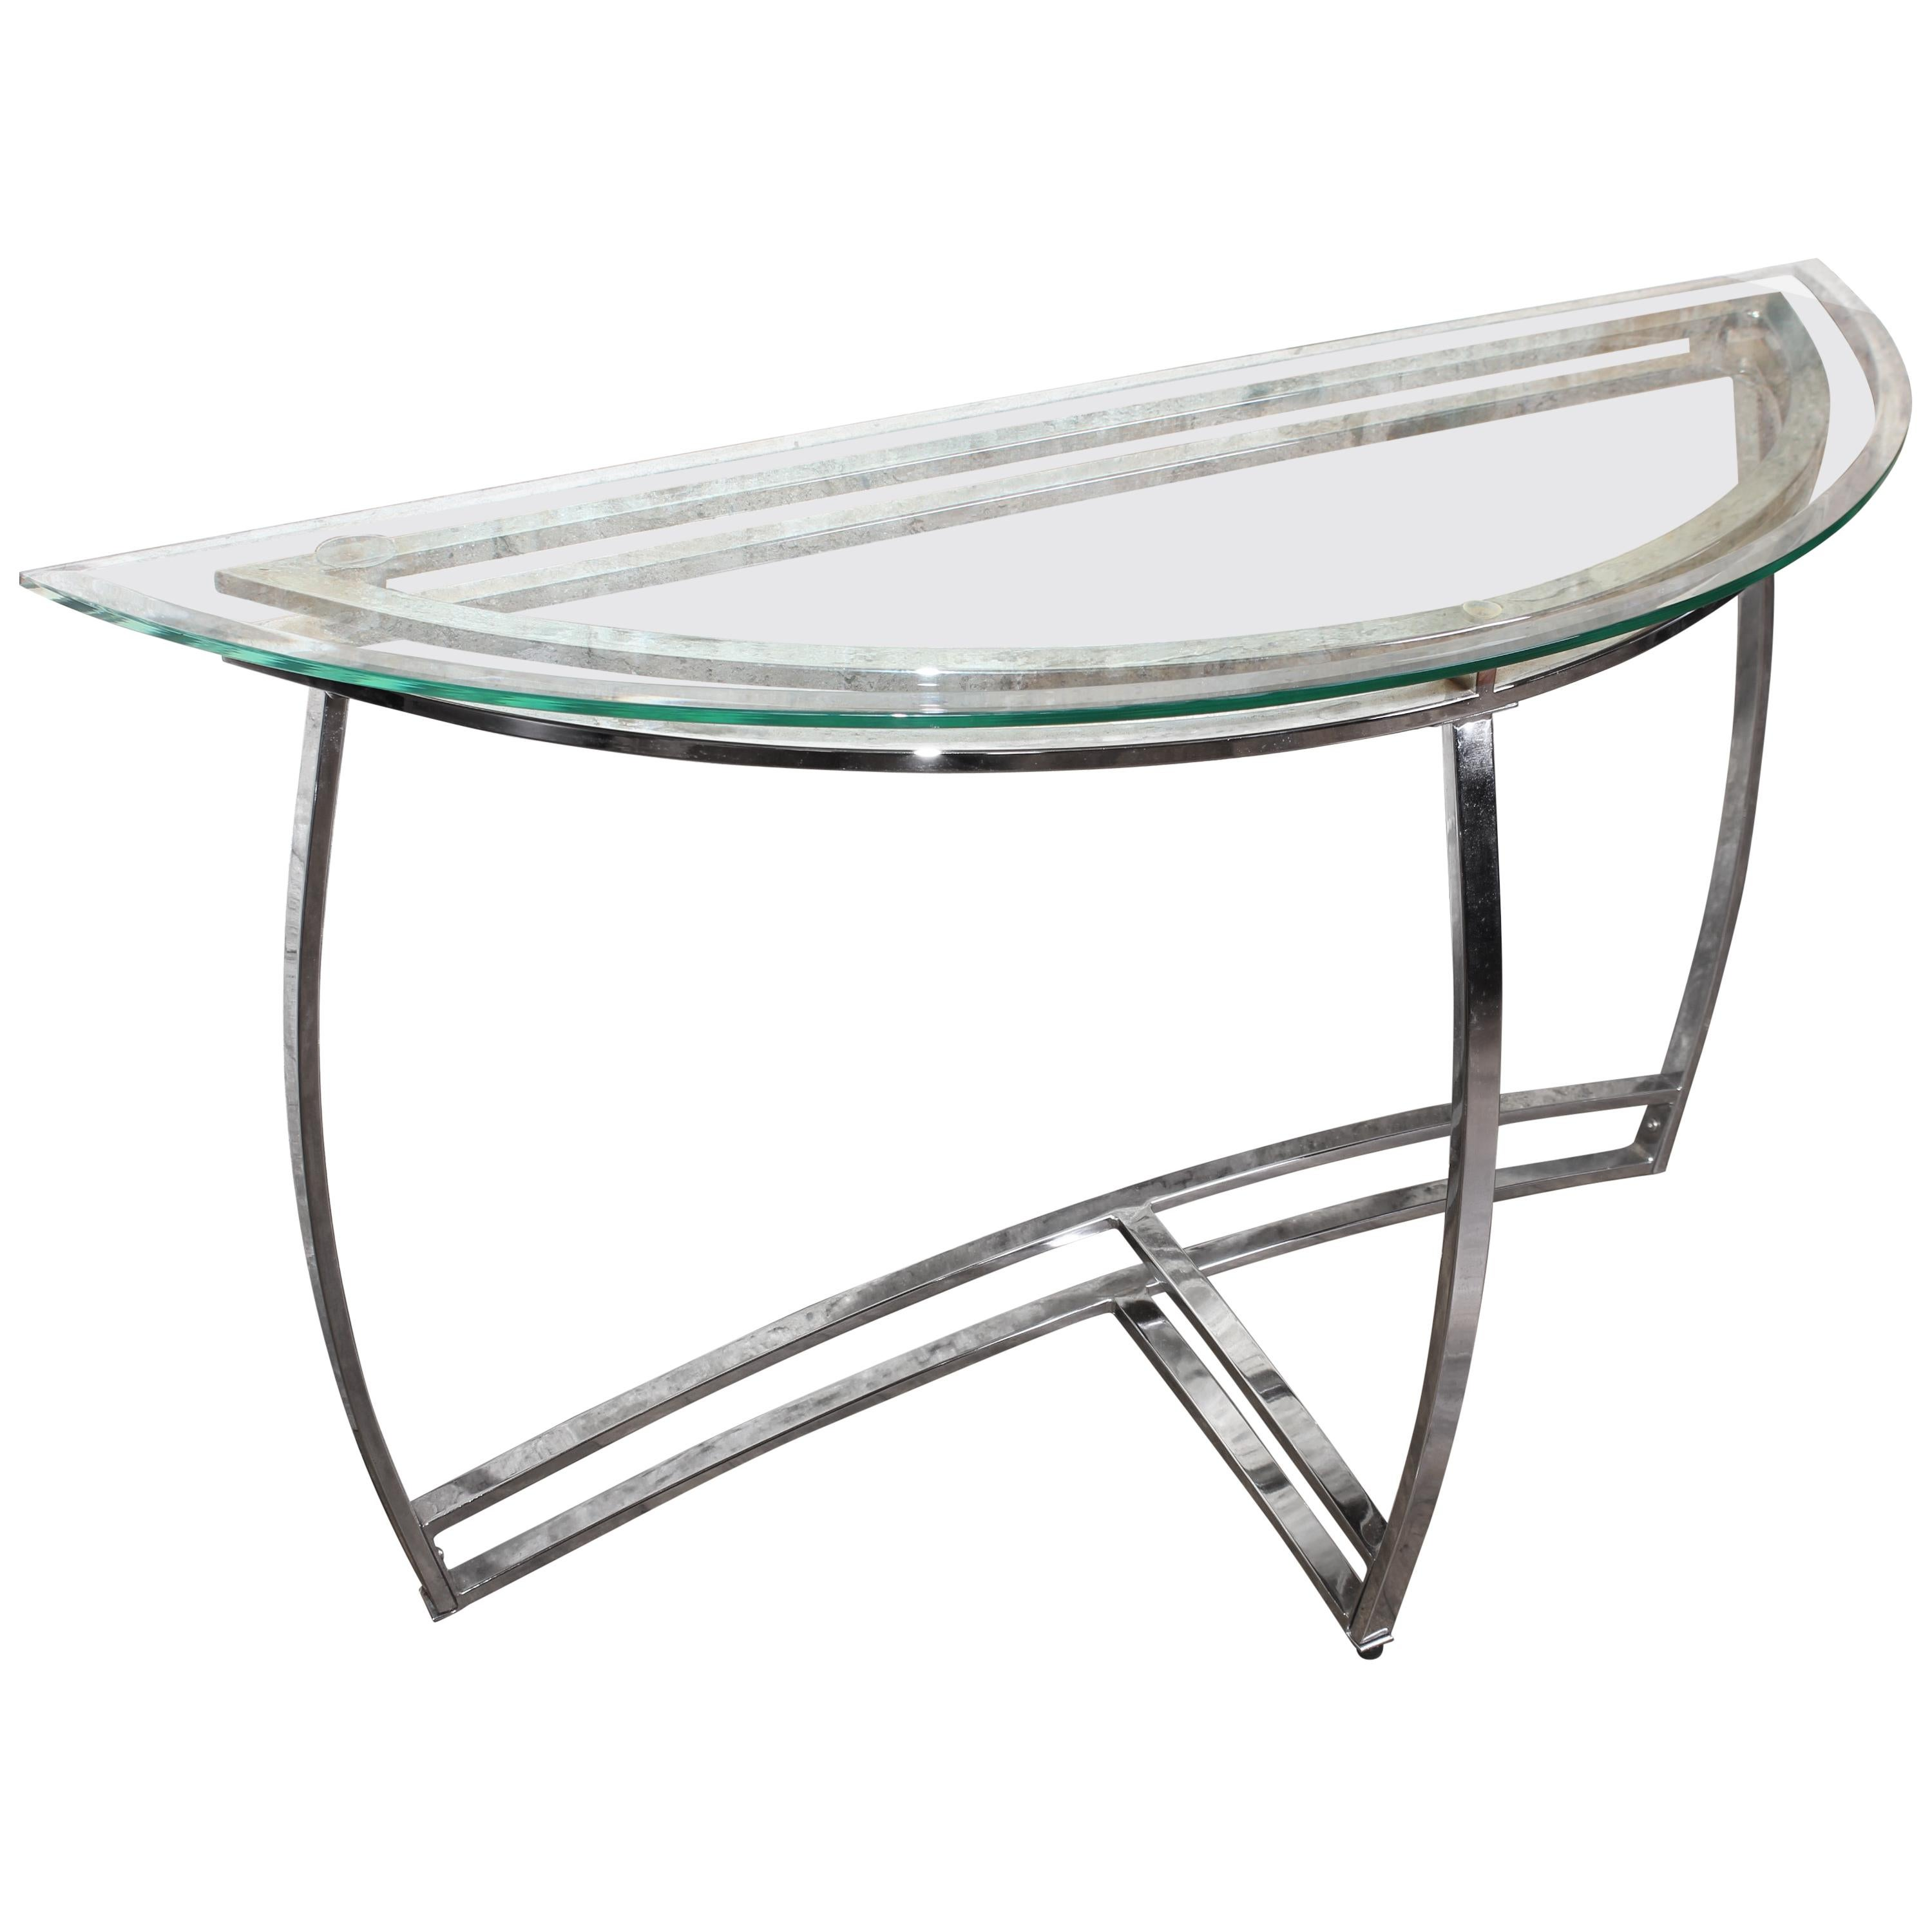 Vintage Mid Century Modern Chrome And Glass Console Table Hall Table